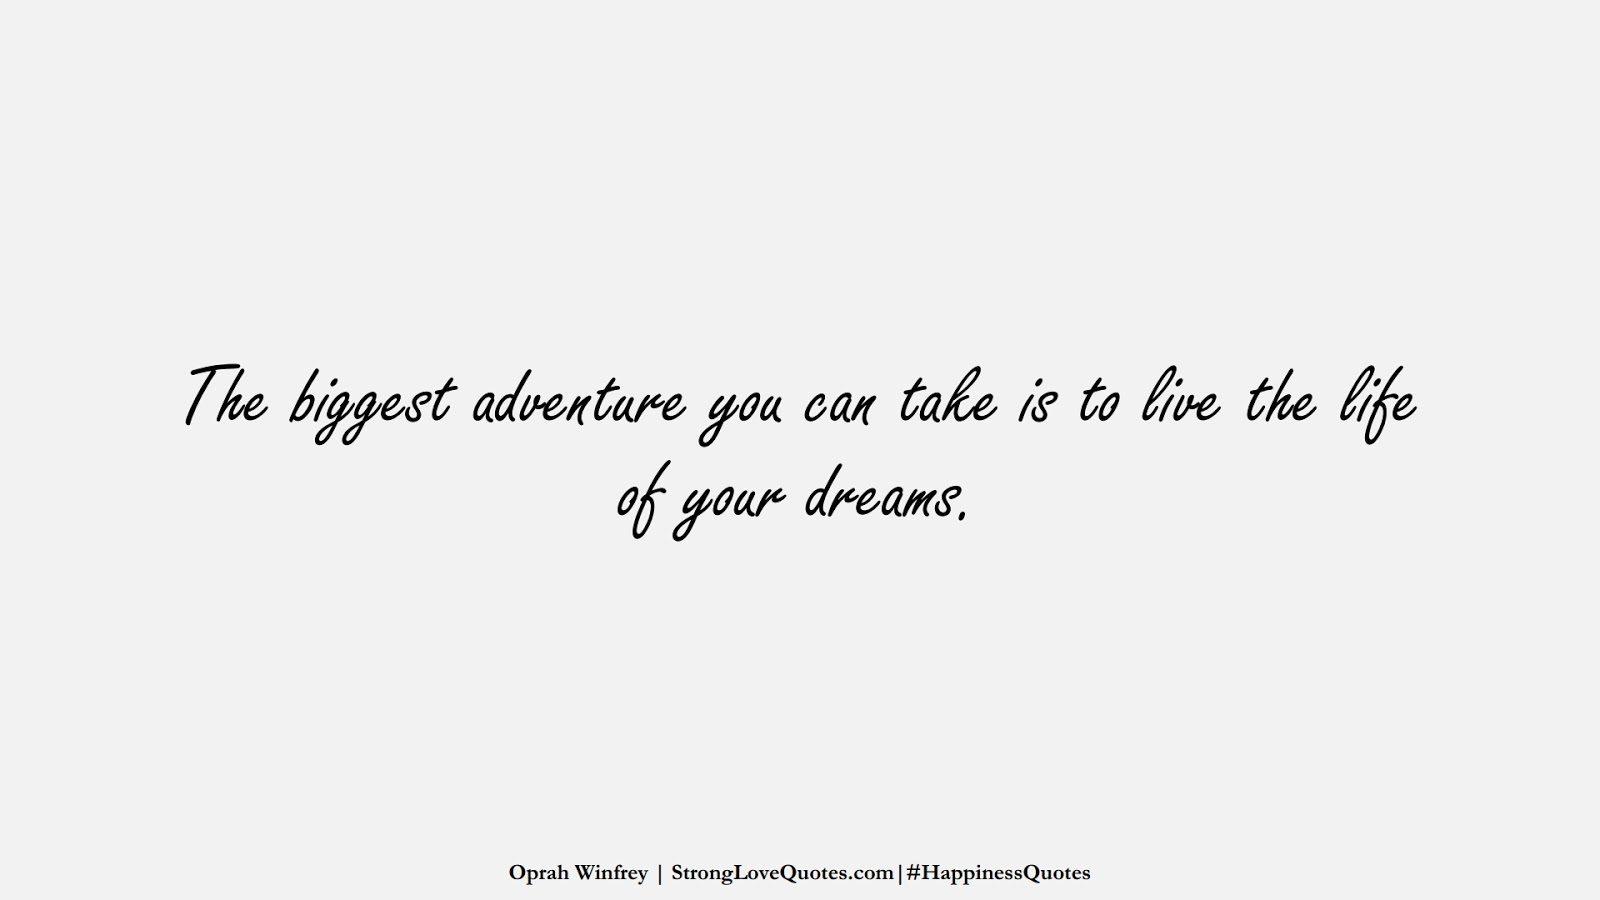 The biggest adventure you can take is to live the life of your dreams. (Oprah Winfrey);  #HappinessQuotes